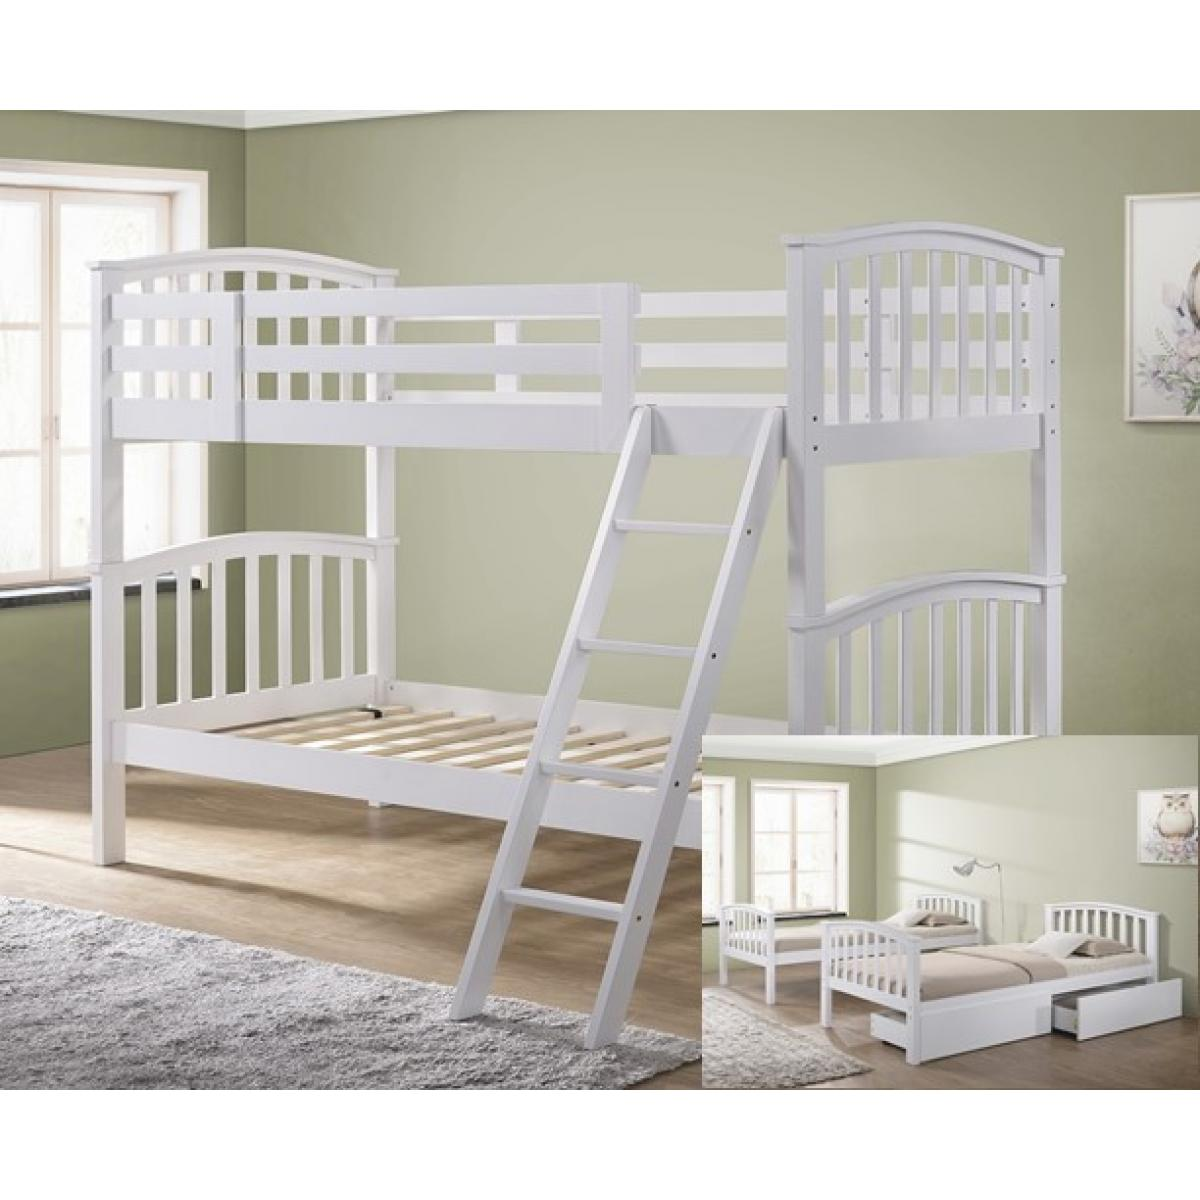 Picture of: Barbican White Hardwood Finished Single Bunk Bed With Storage